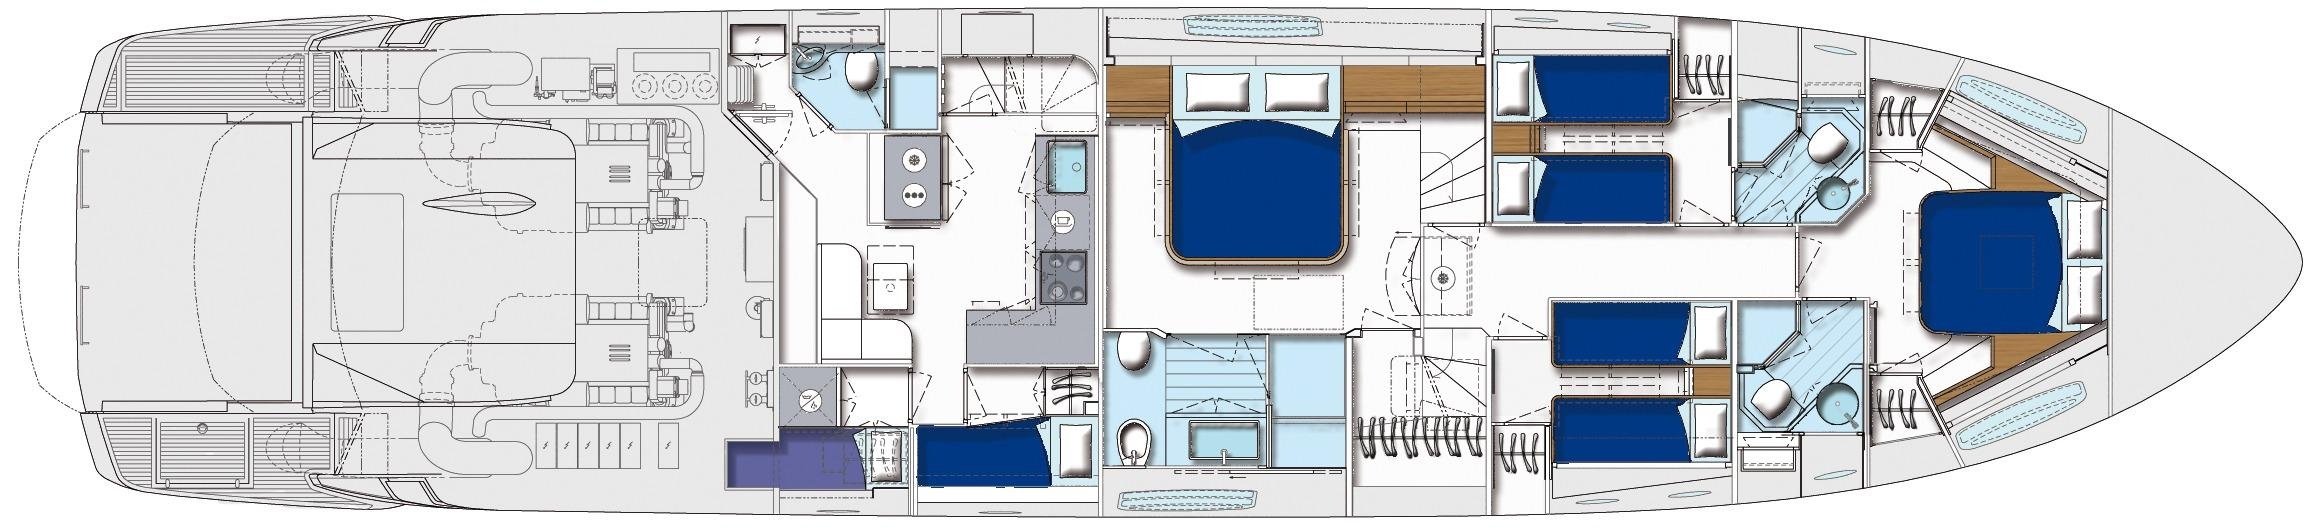 2015 Pershing 82 - Layout